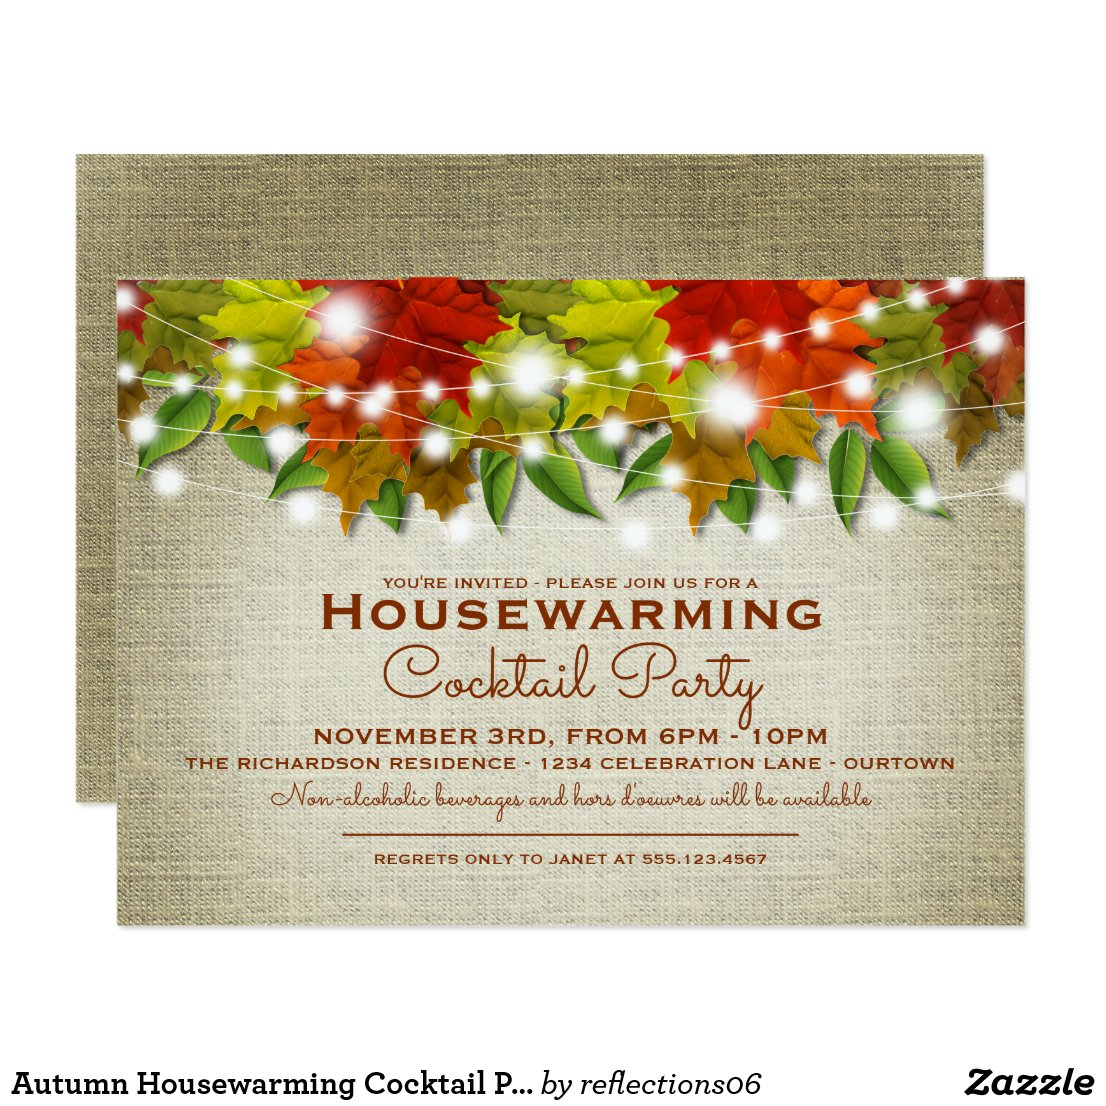 Autumn Housewarming Cocktail Party Invitation